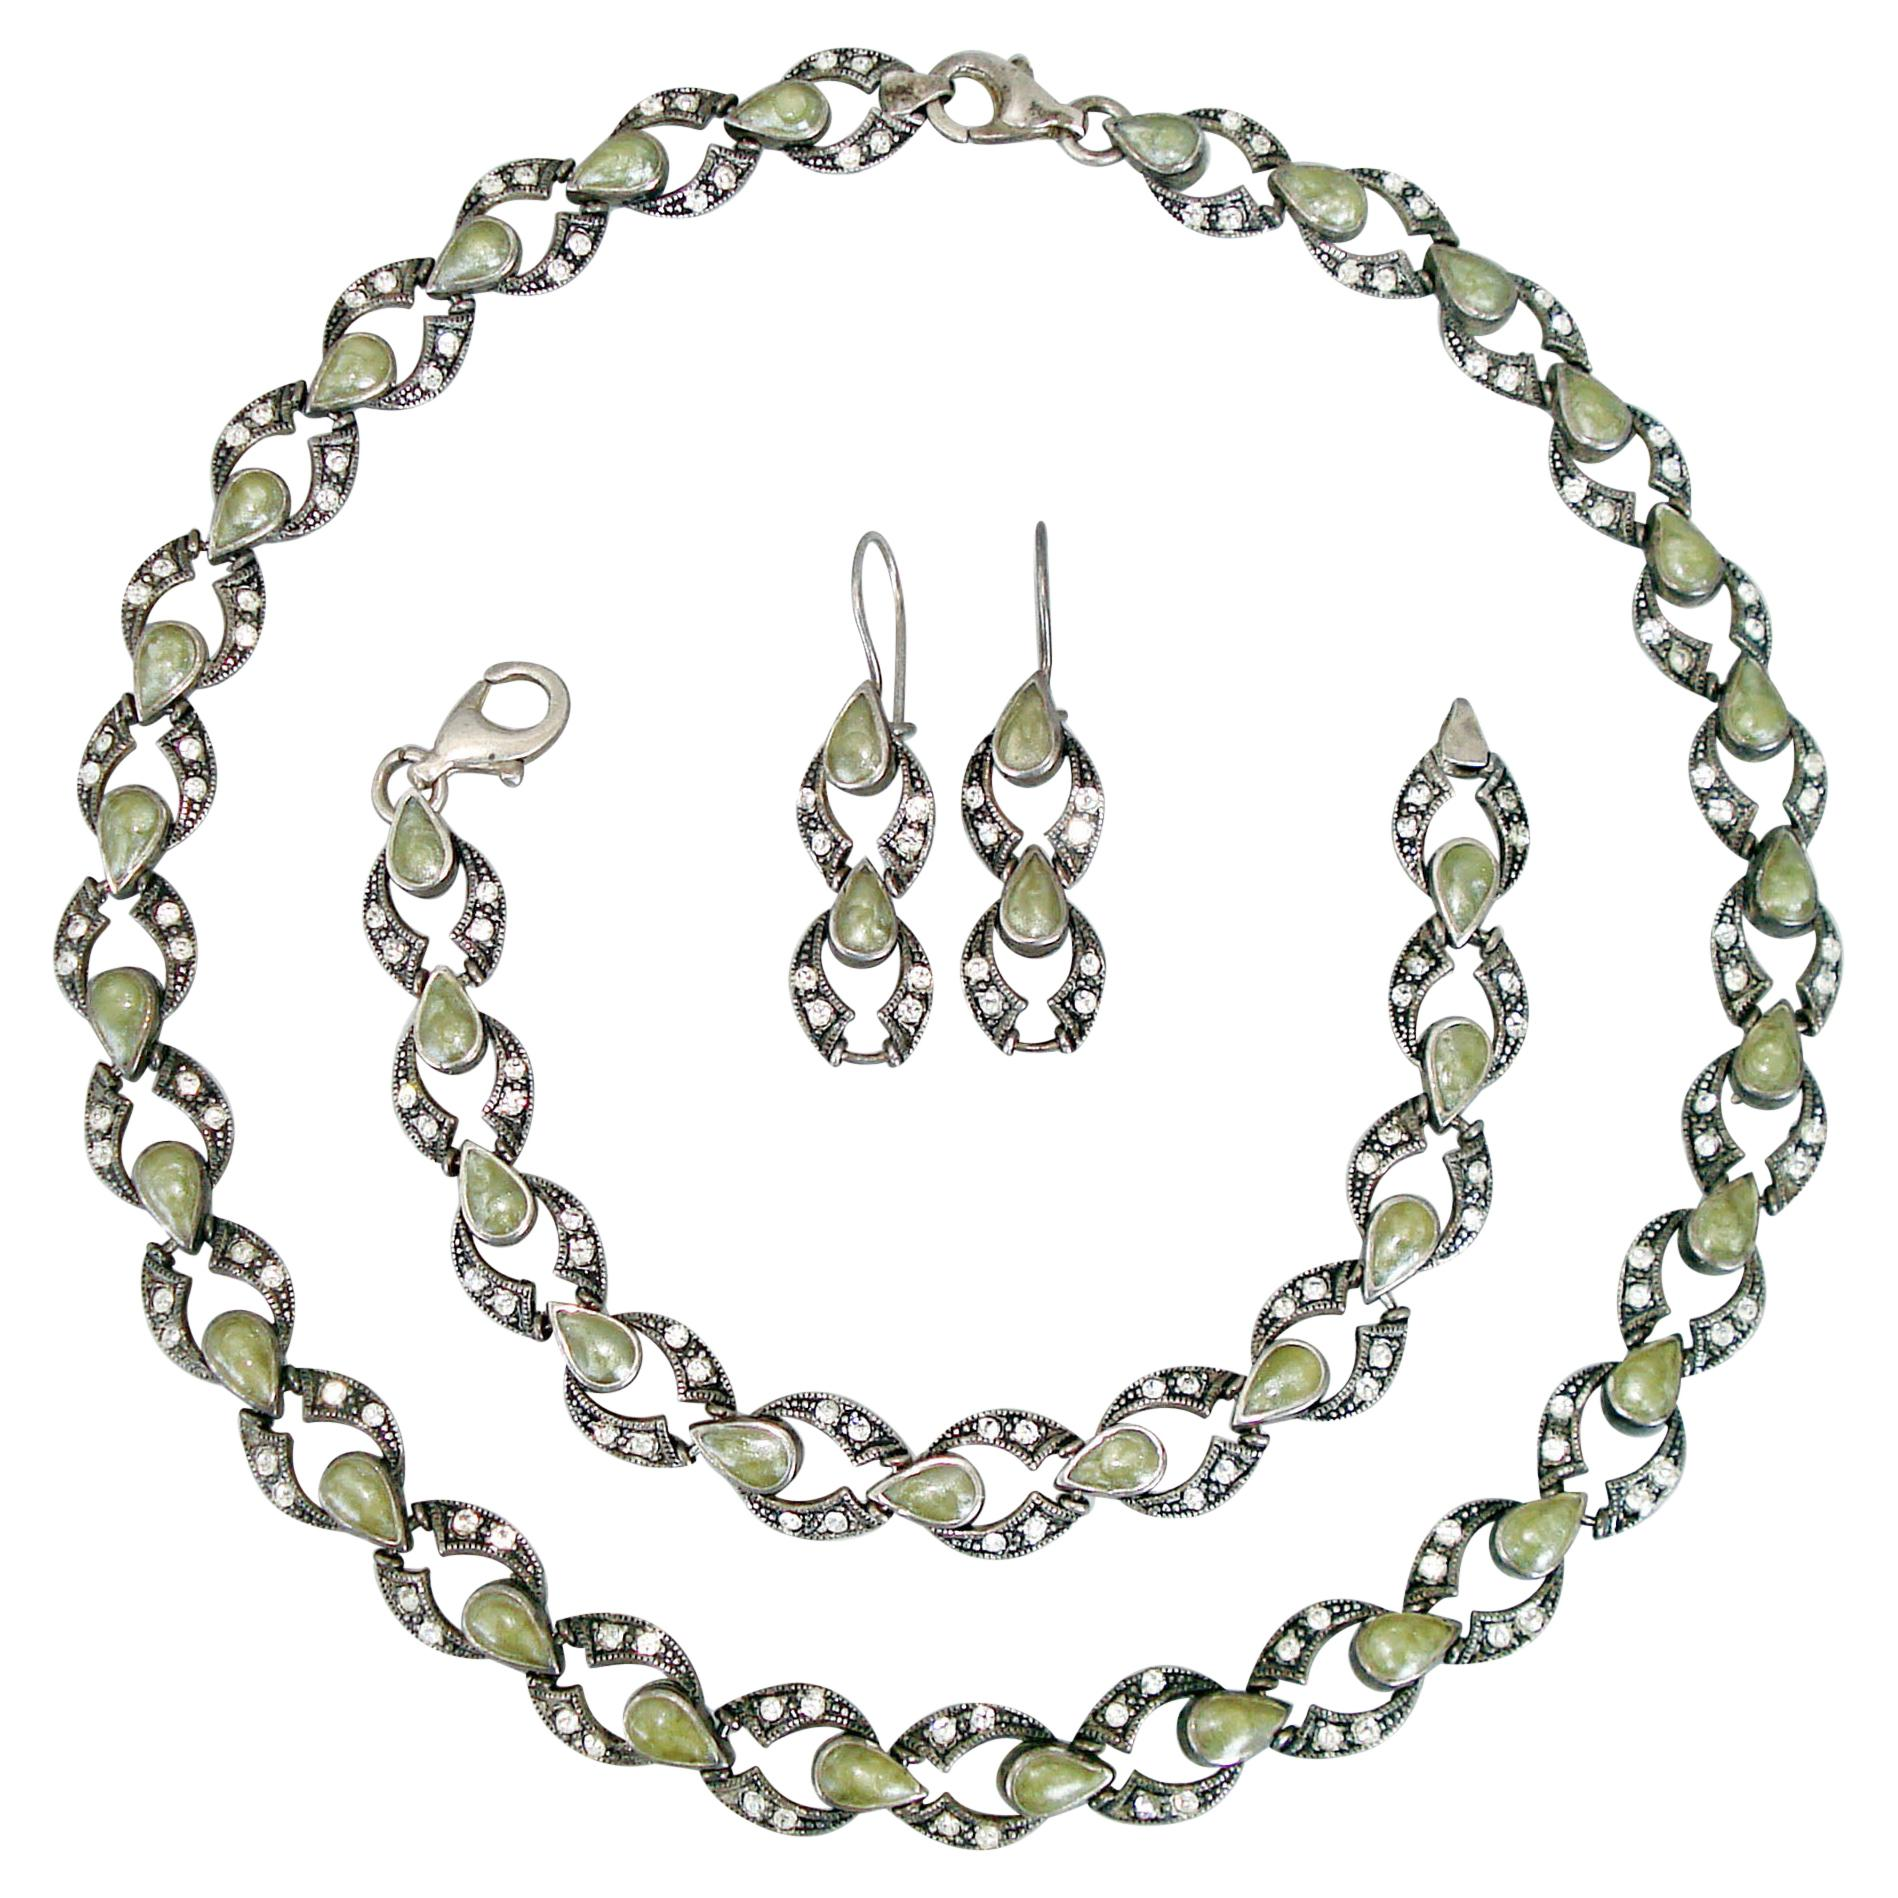 Vintage Silver and Marcasite Jewelry Set Necklace, Bracelet and Earrings, 1980s